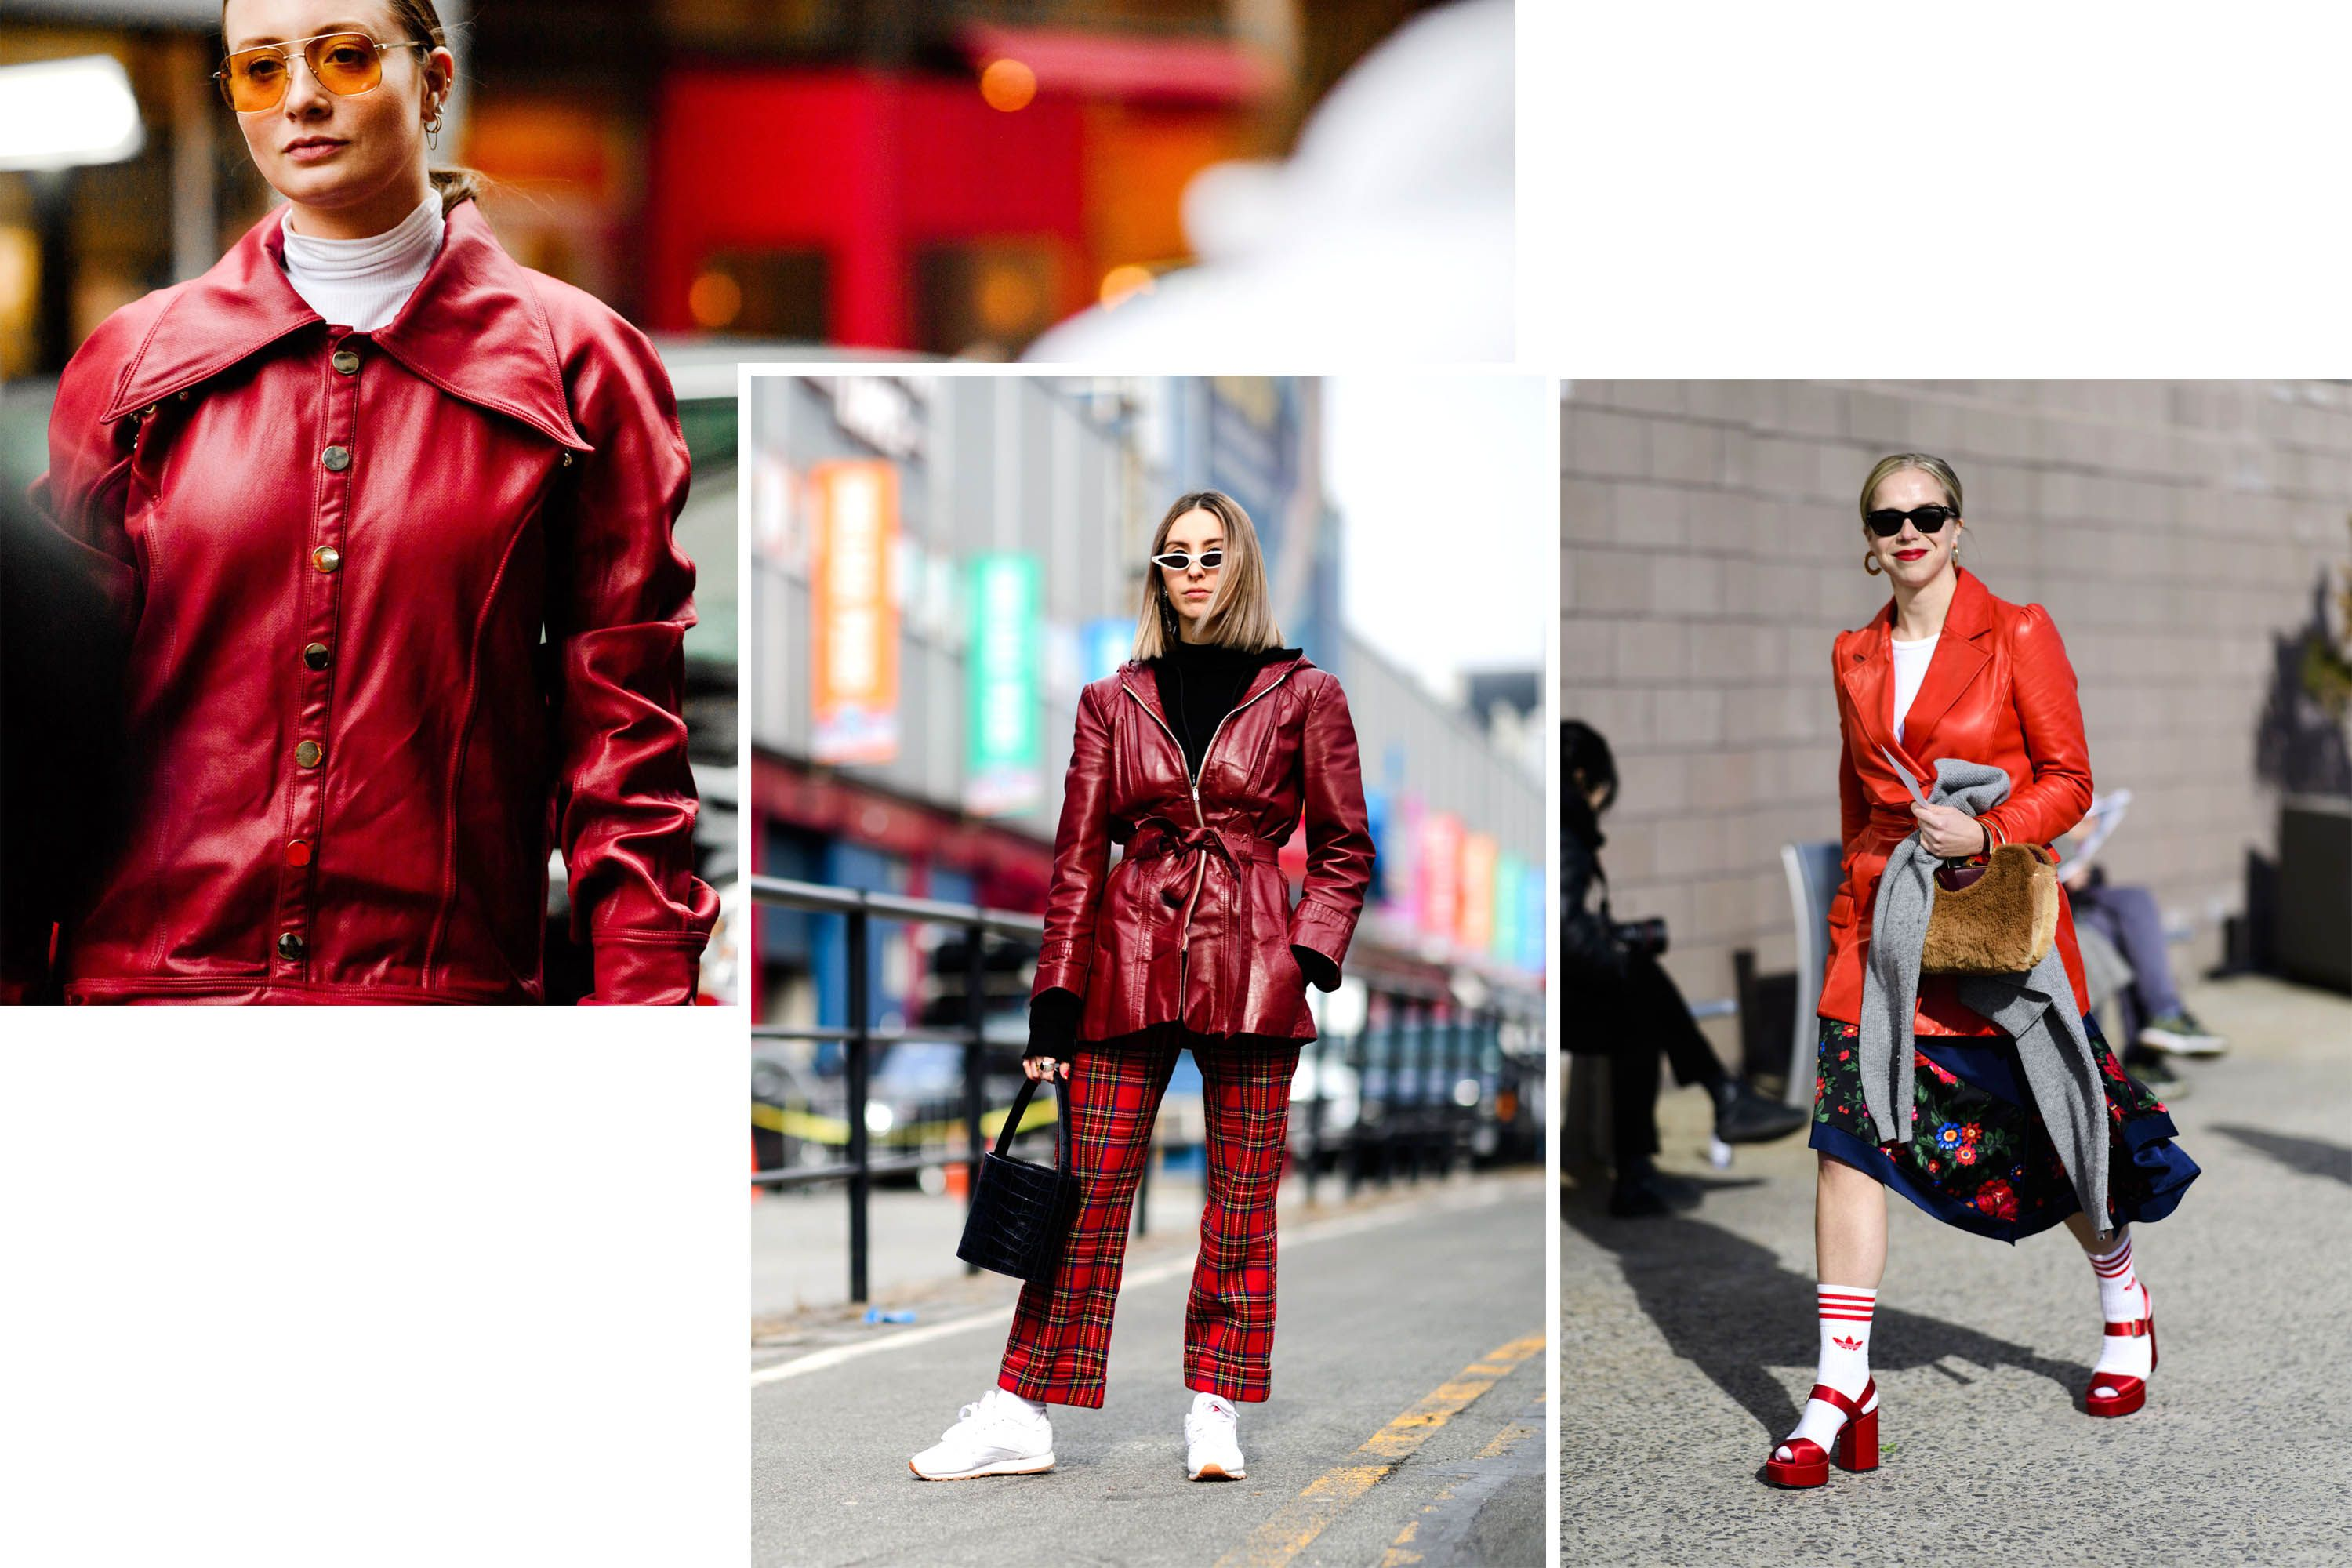 hbz-the-list-spring-jackets-red-leather-1519143383.jpg (3000×2000)